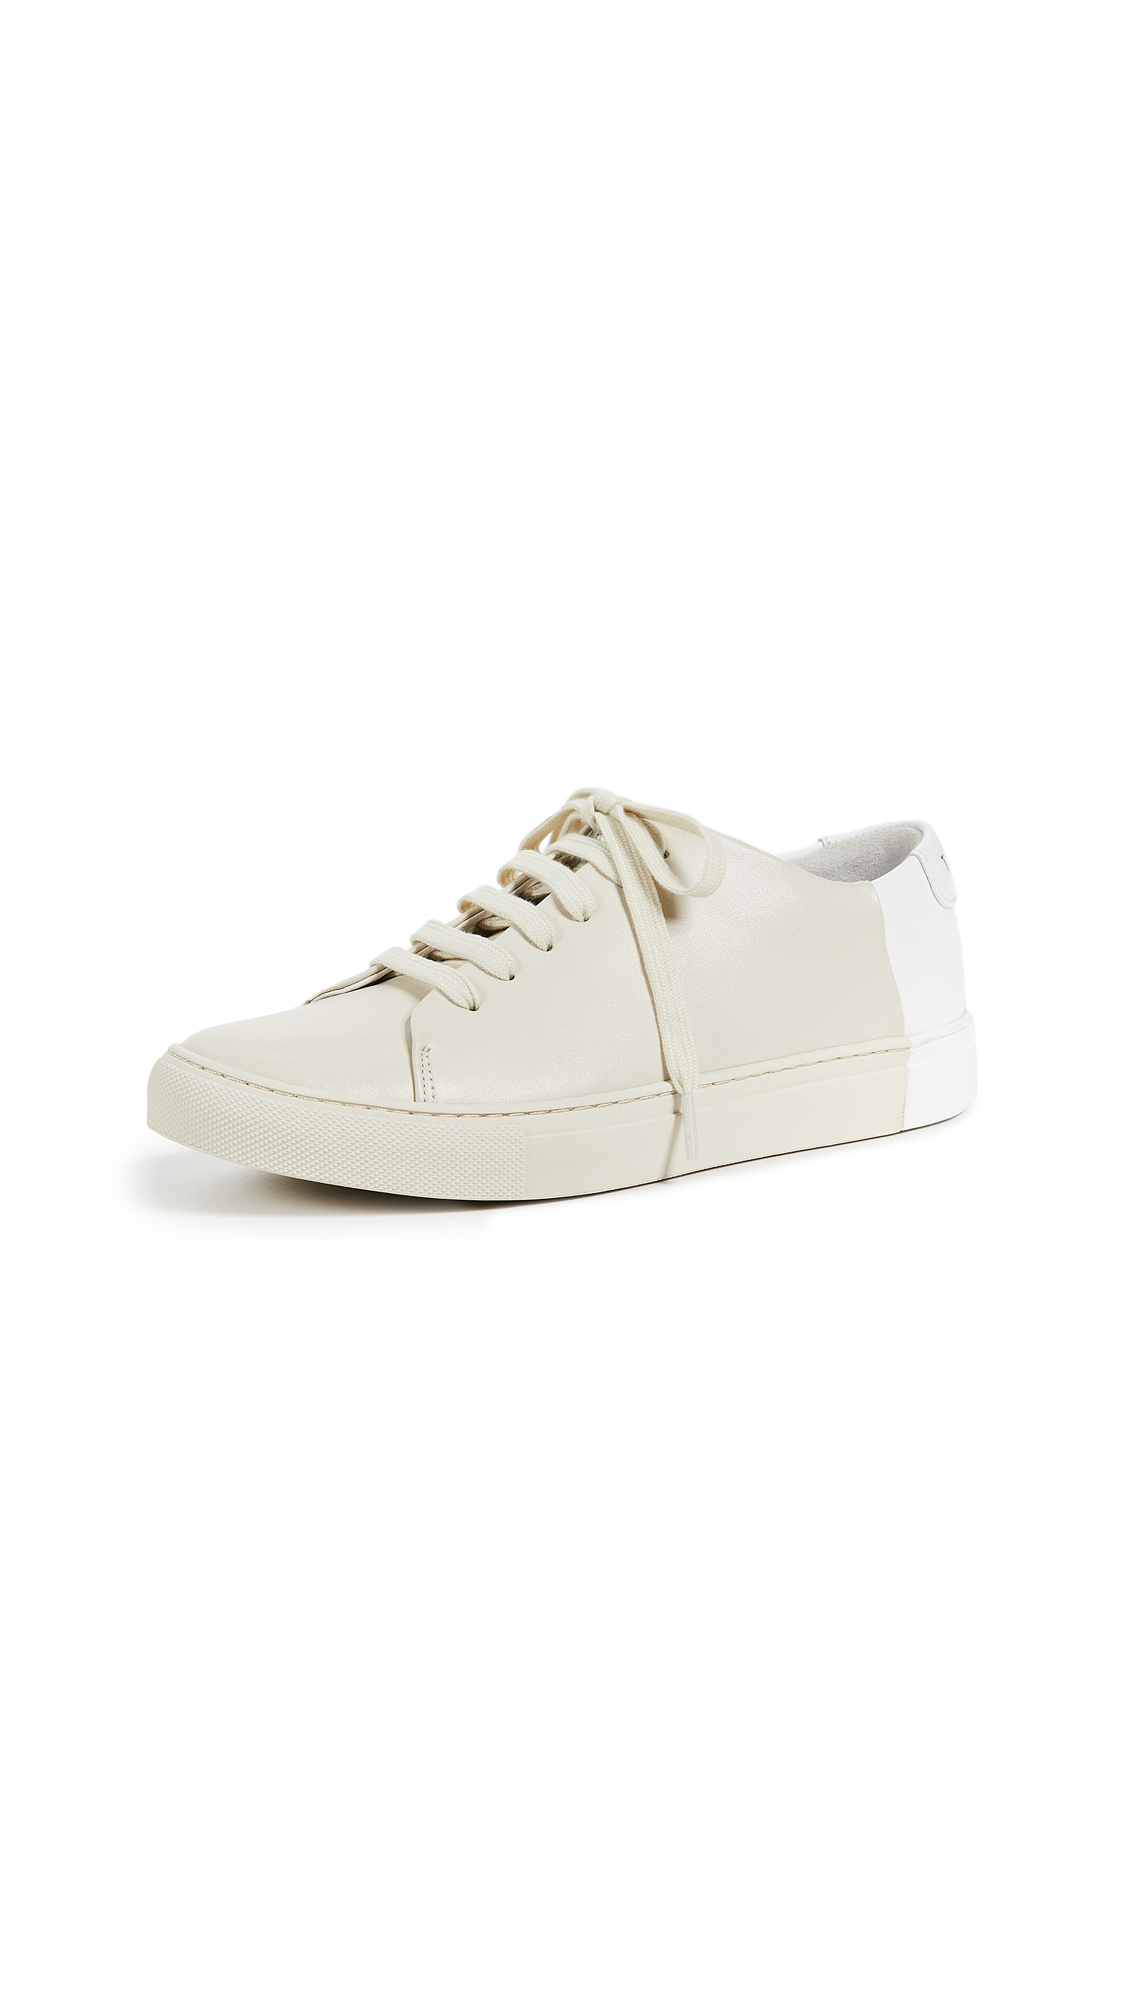 THEY NEW YORK Two Tone Low Sneakers - Beige/White